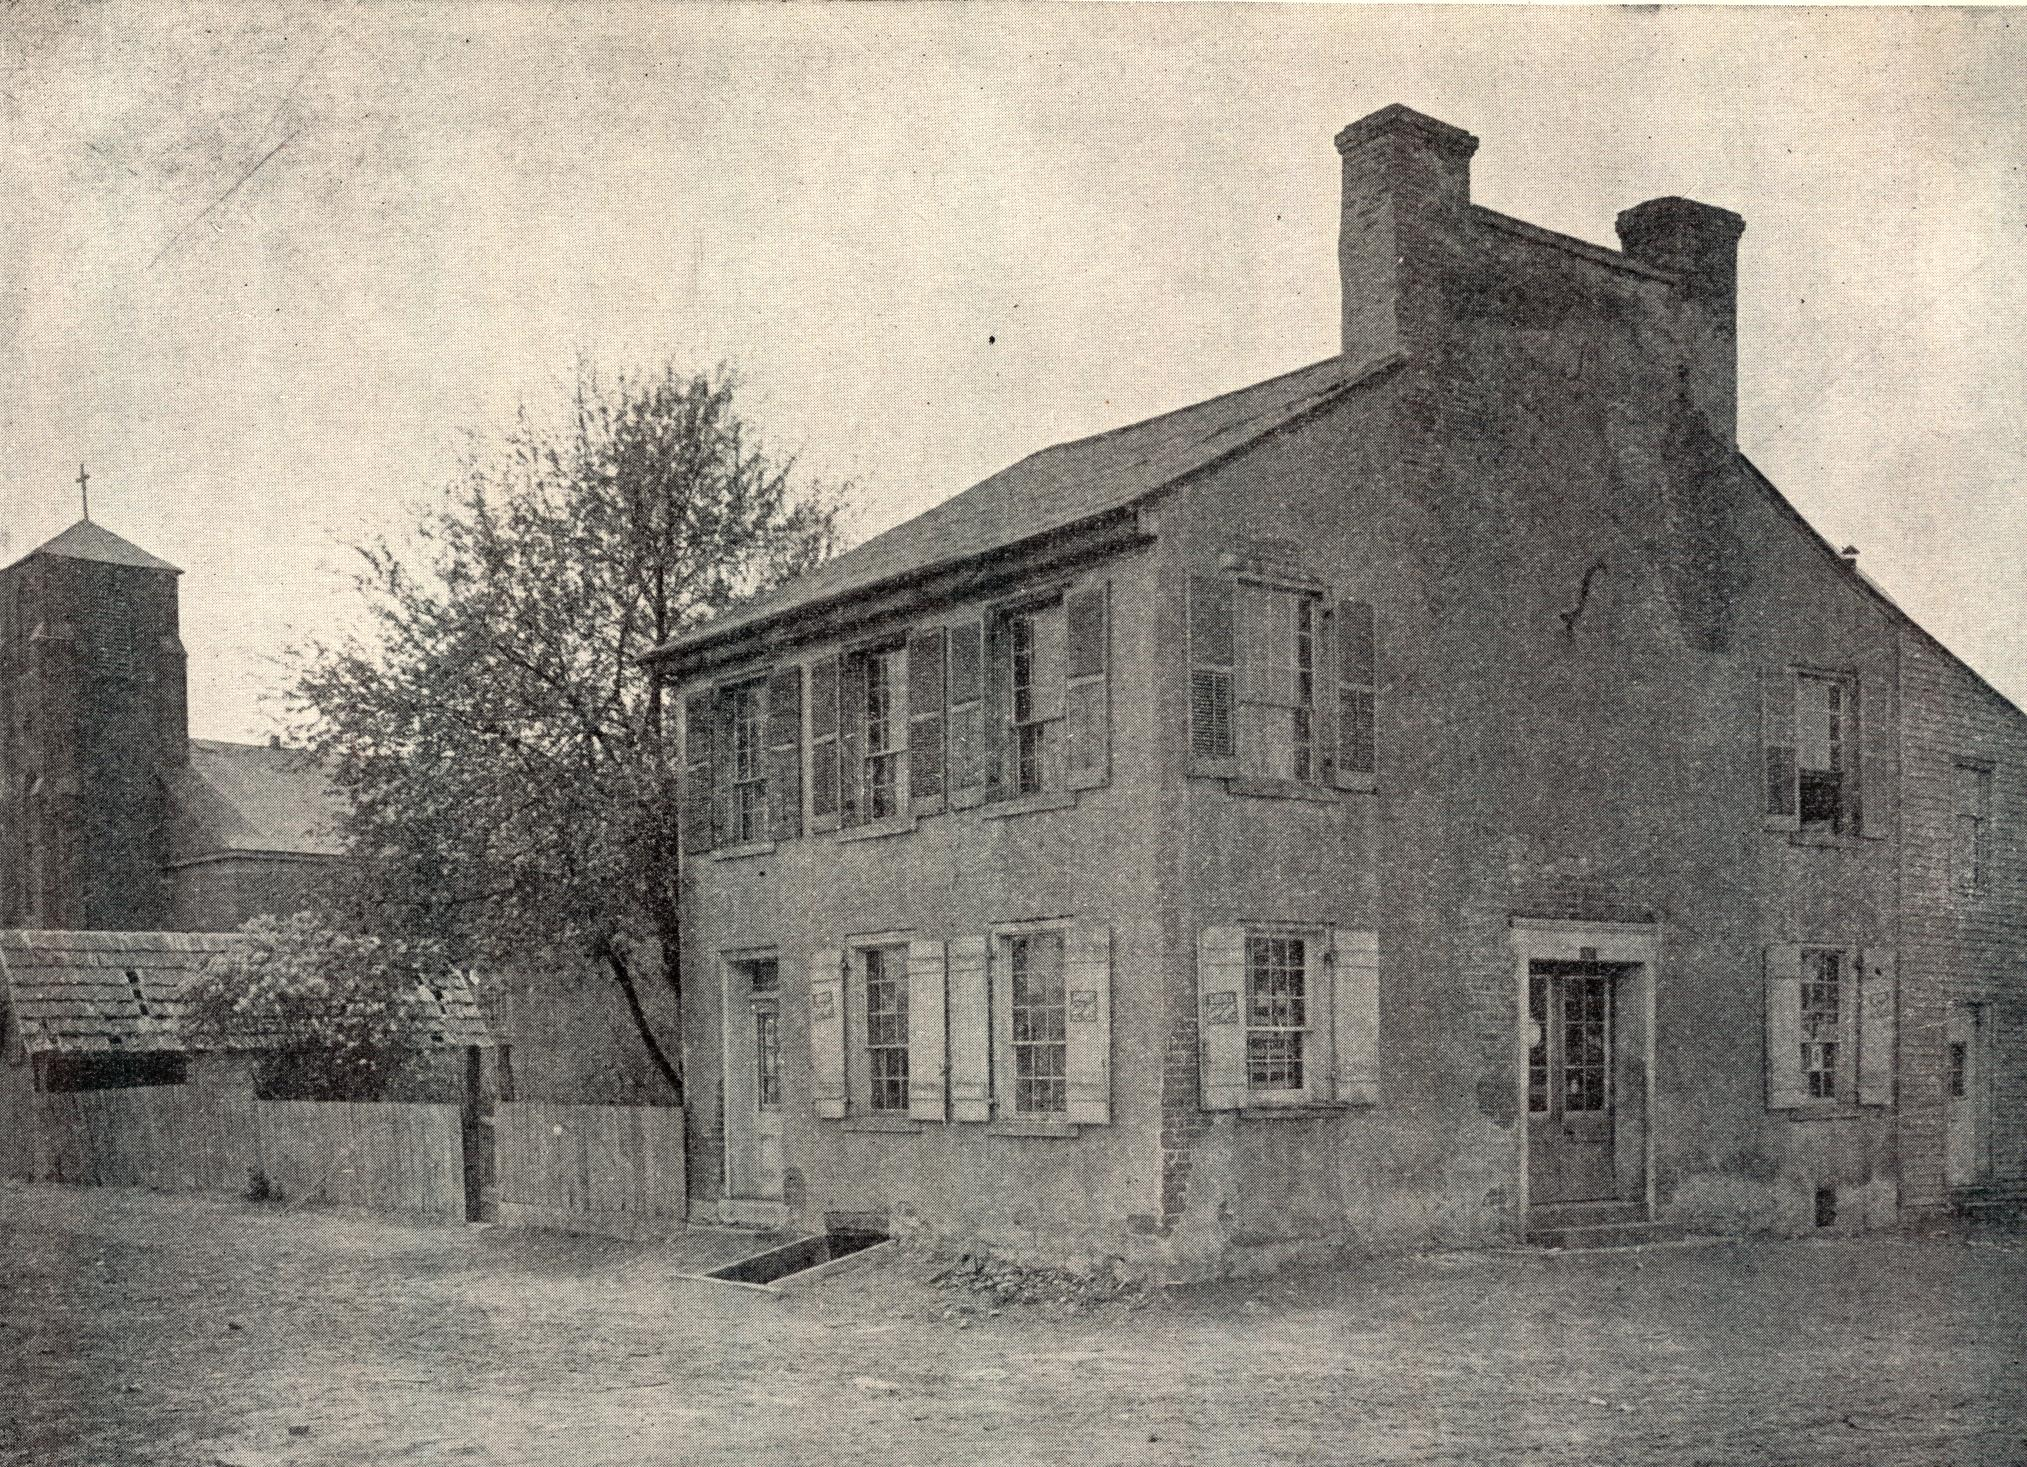 The first Illinois Assembly met in this building in Kaskaskia